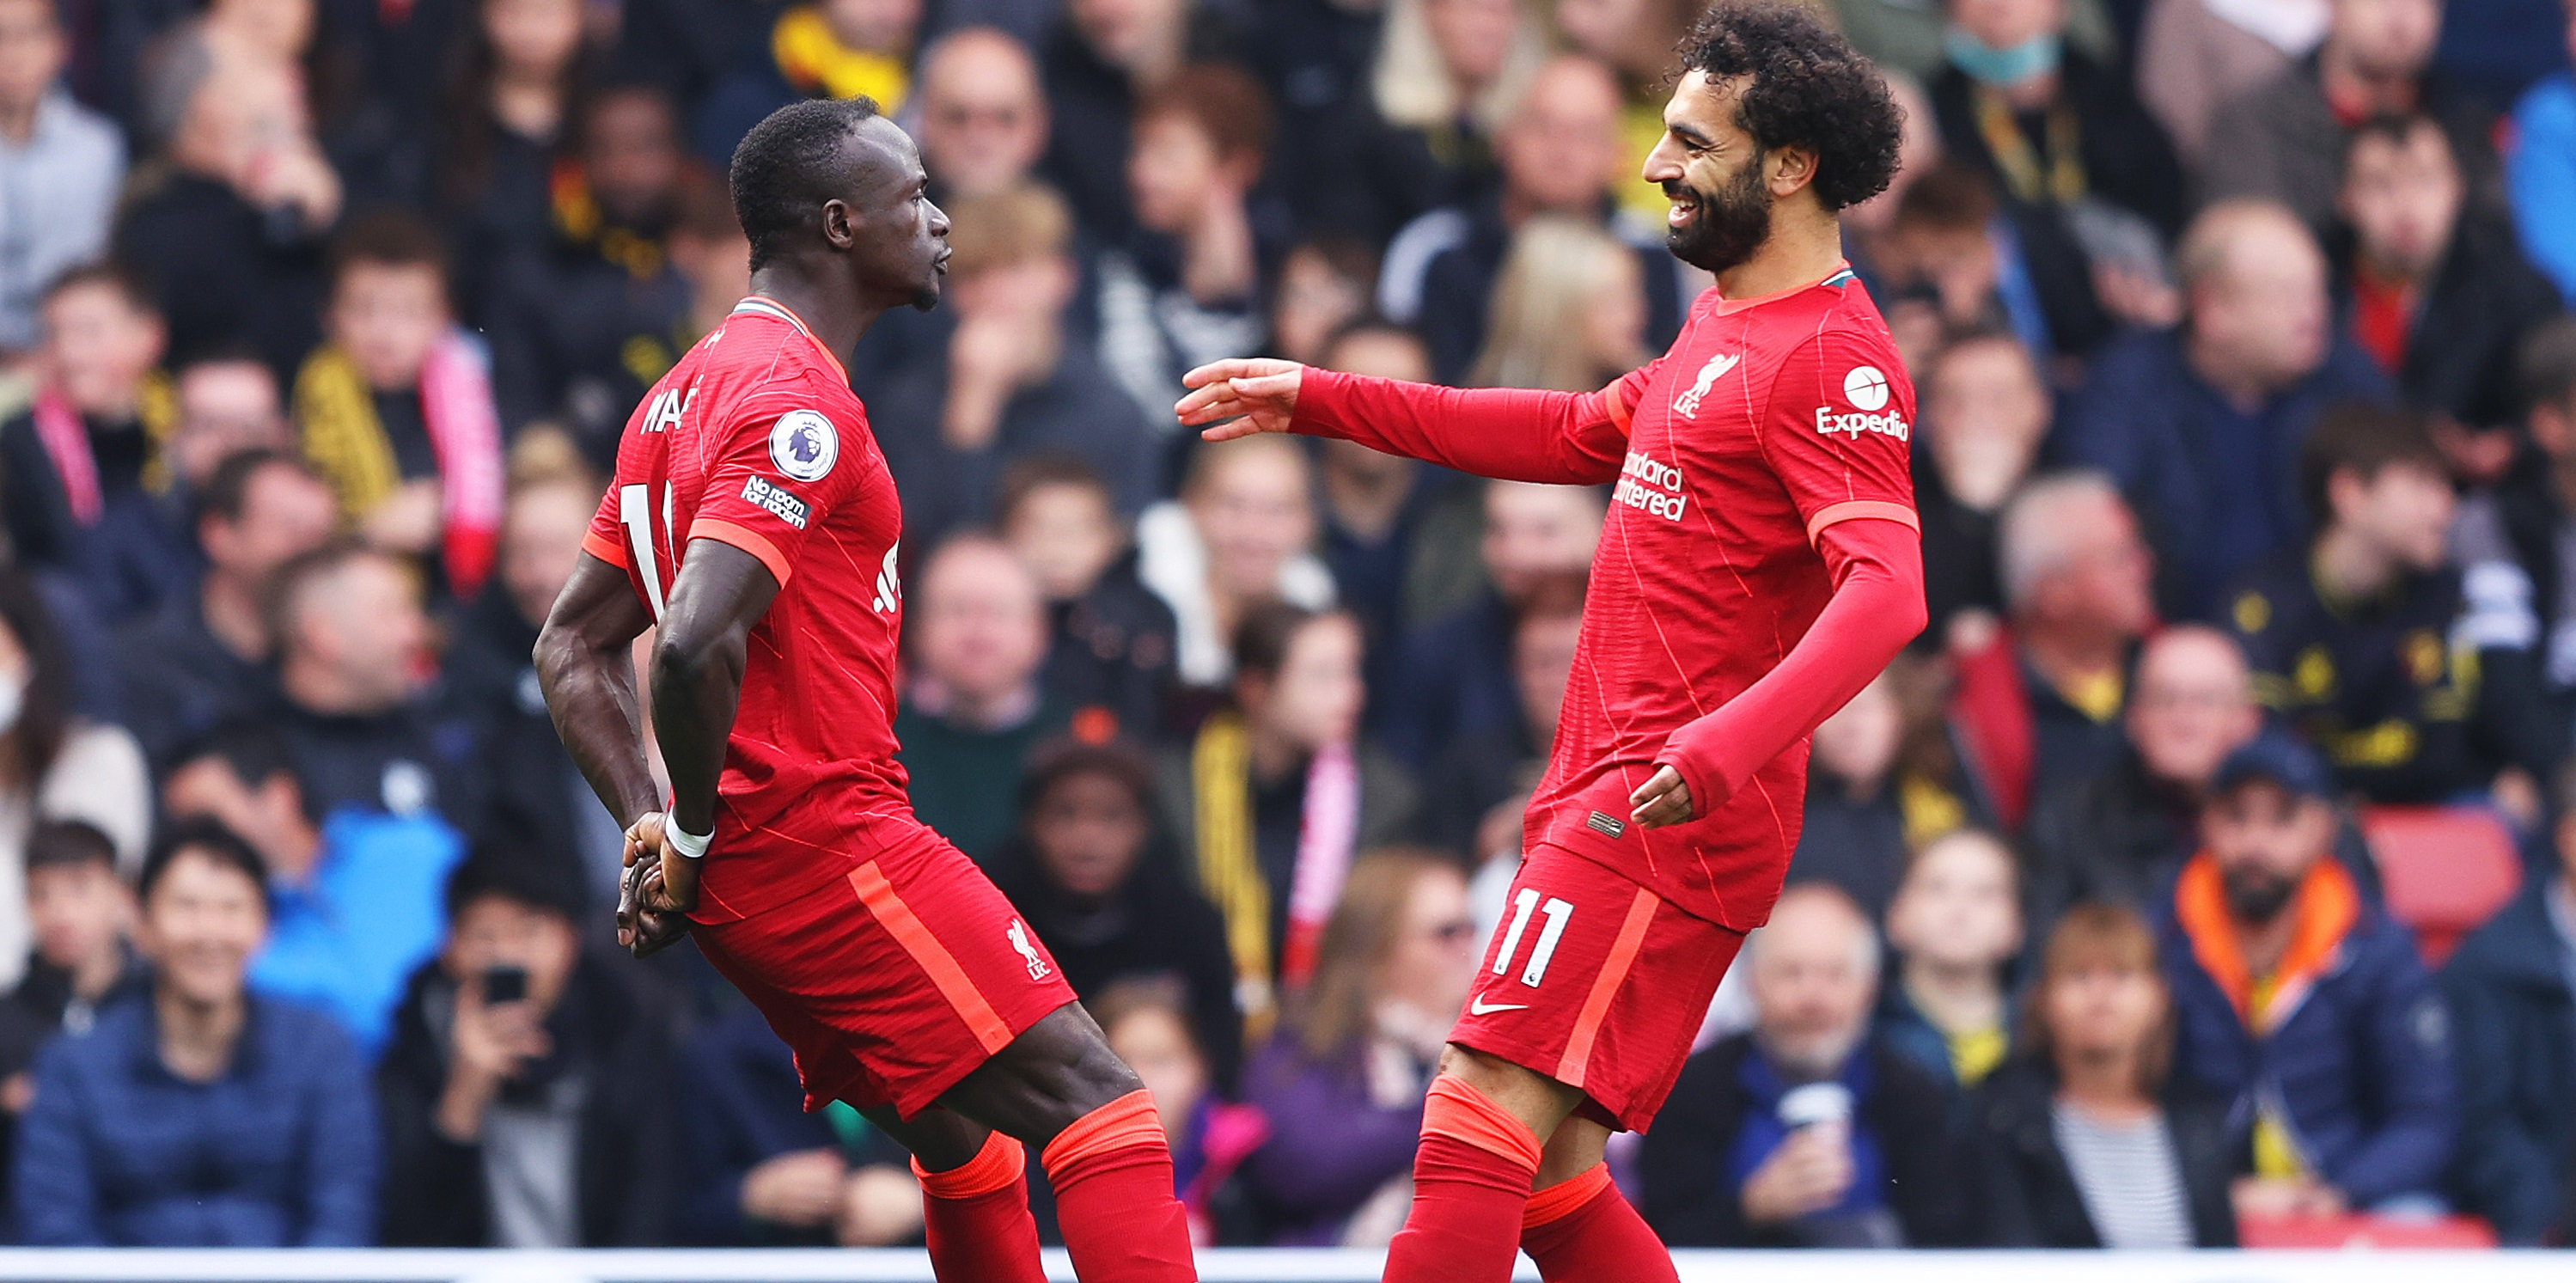 Liverpool may be without Salah & Mane for more games than expected in potential AFCON blow – would miss crucial Chelsea tie